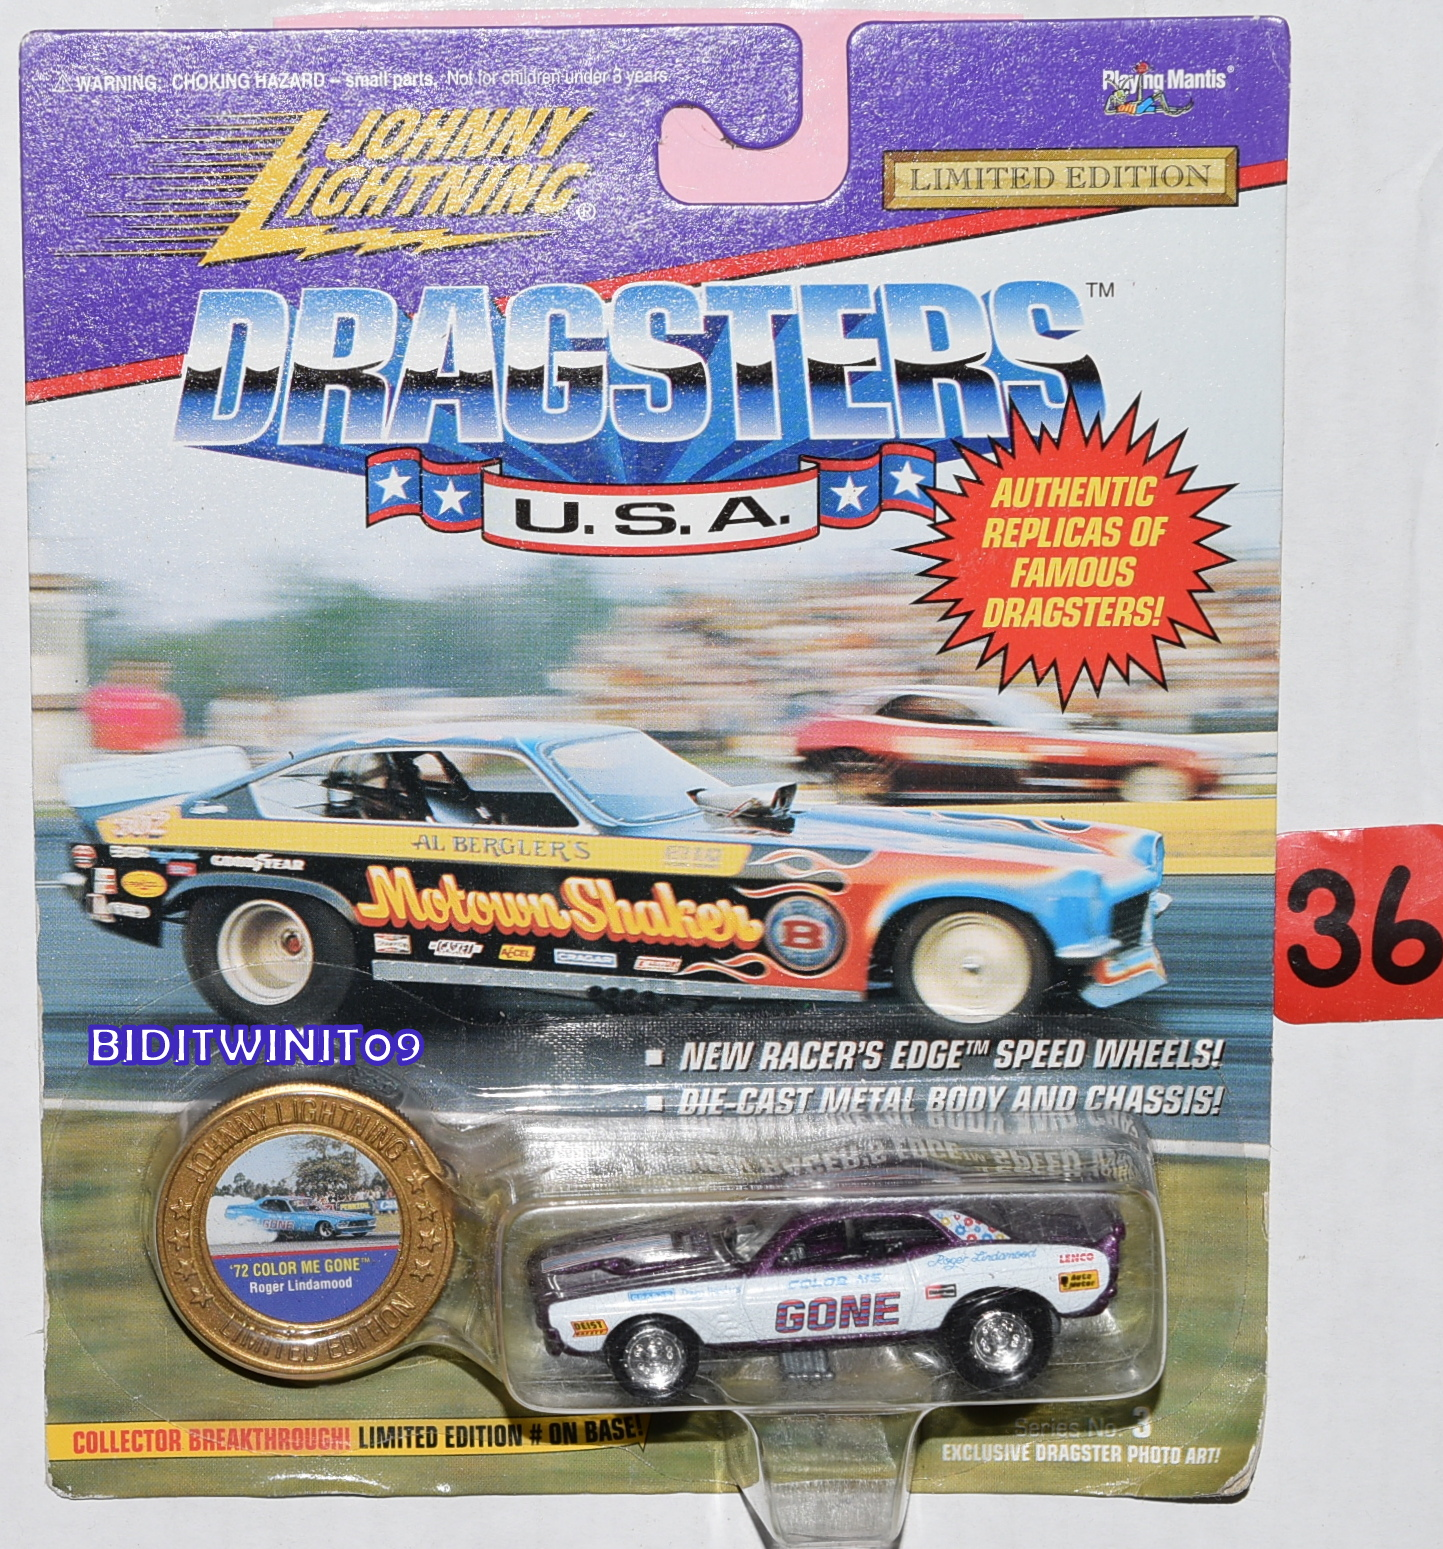 JOHNNY LIGHTNING DRAGSTERS U.S.A. '72 COLOR ME GONE LIMITED EDITION E+